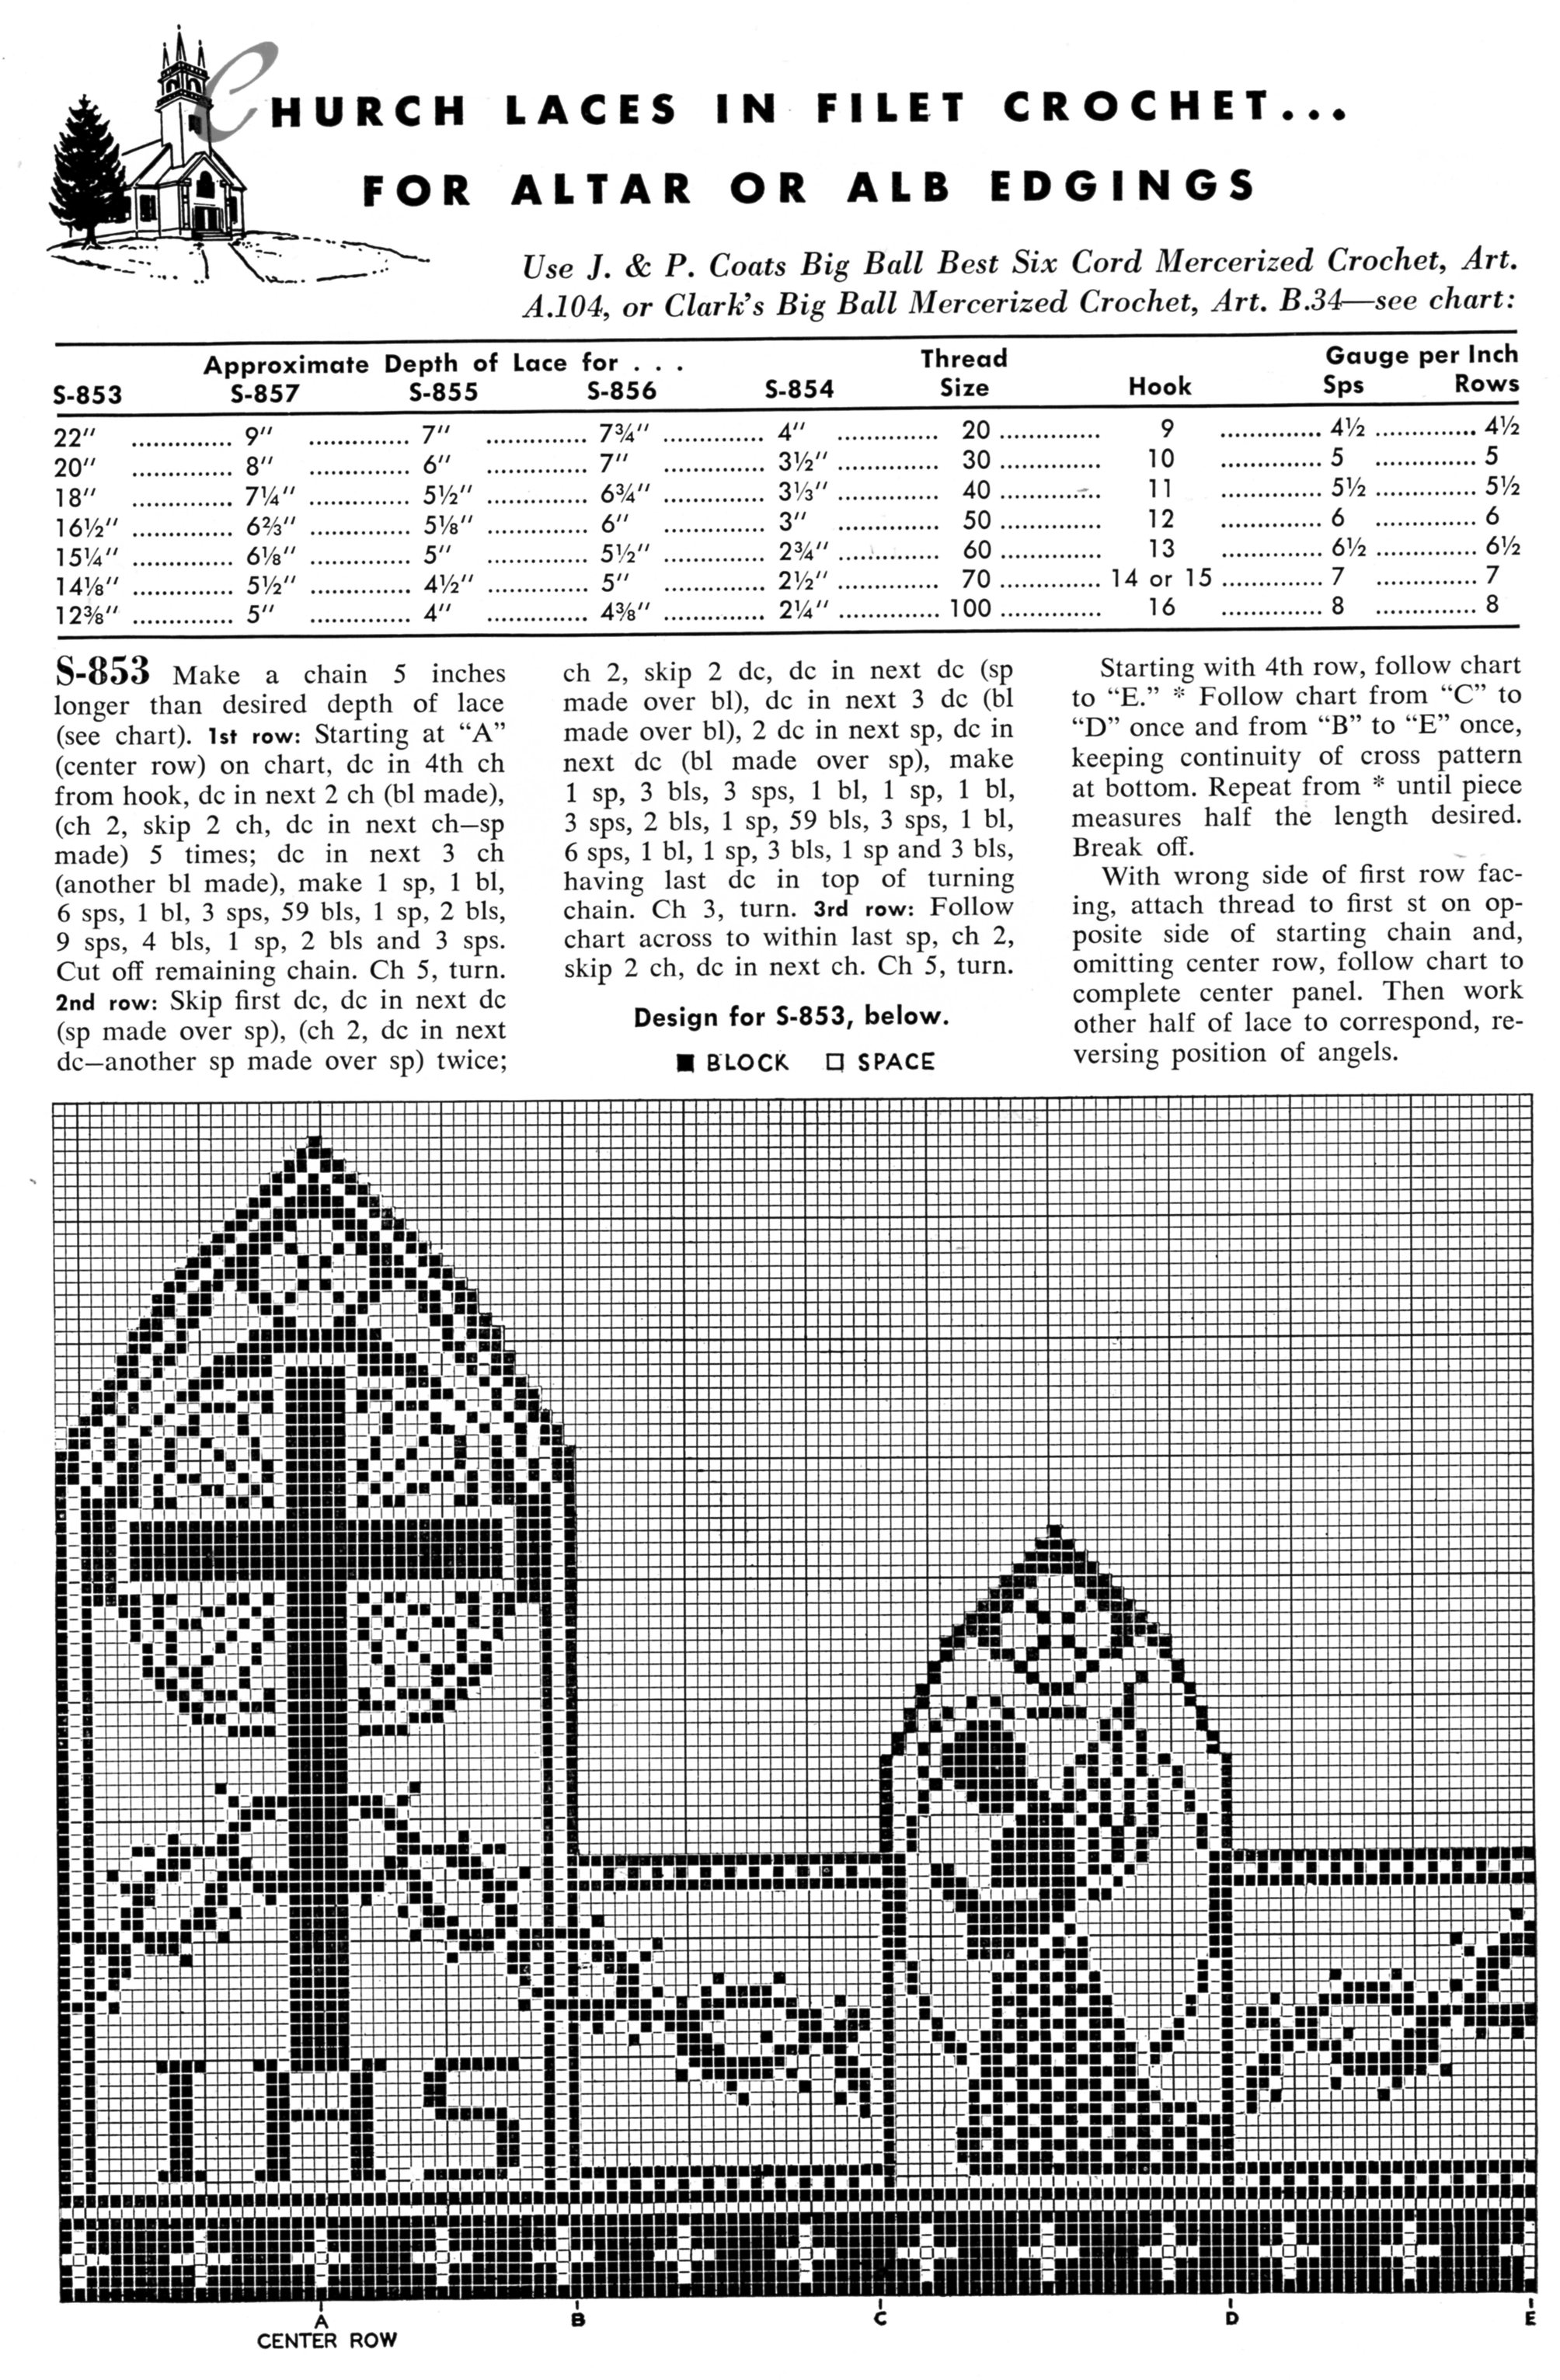 Filet crochet edging patterns for lace altar cloths and robes filet crochet edging patterns for altars and robes vintage crafts and more bankloansurffo Gallery